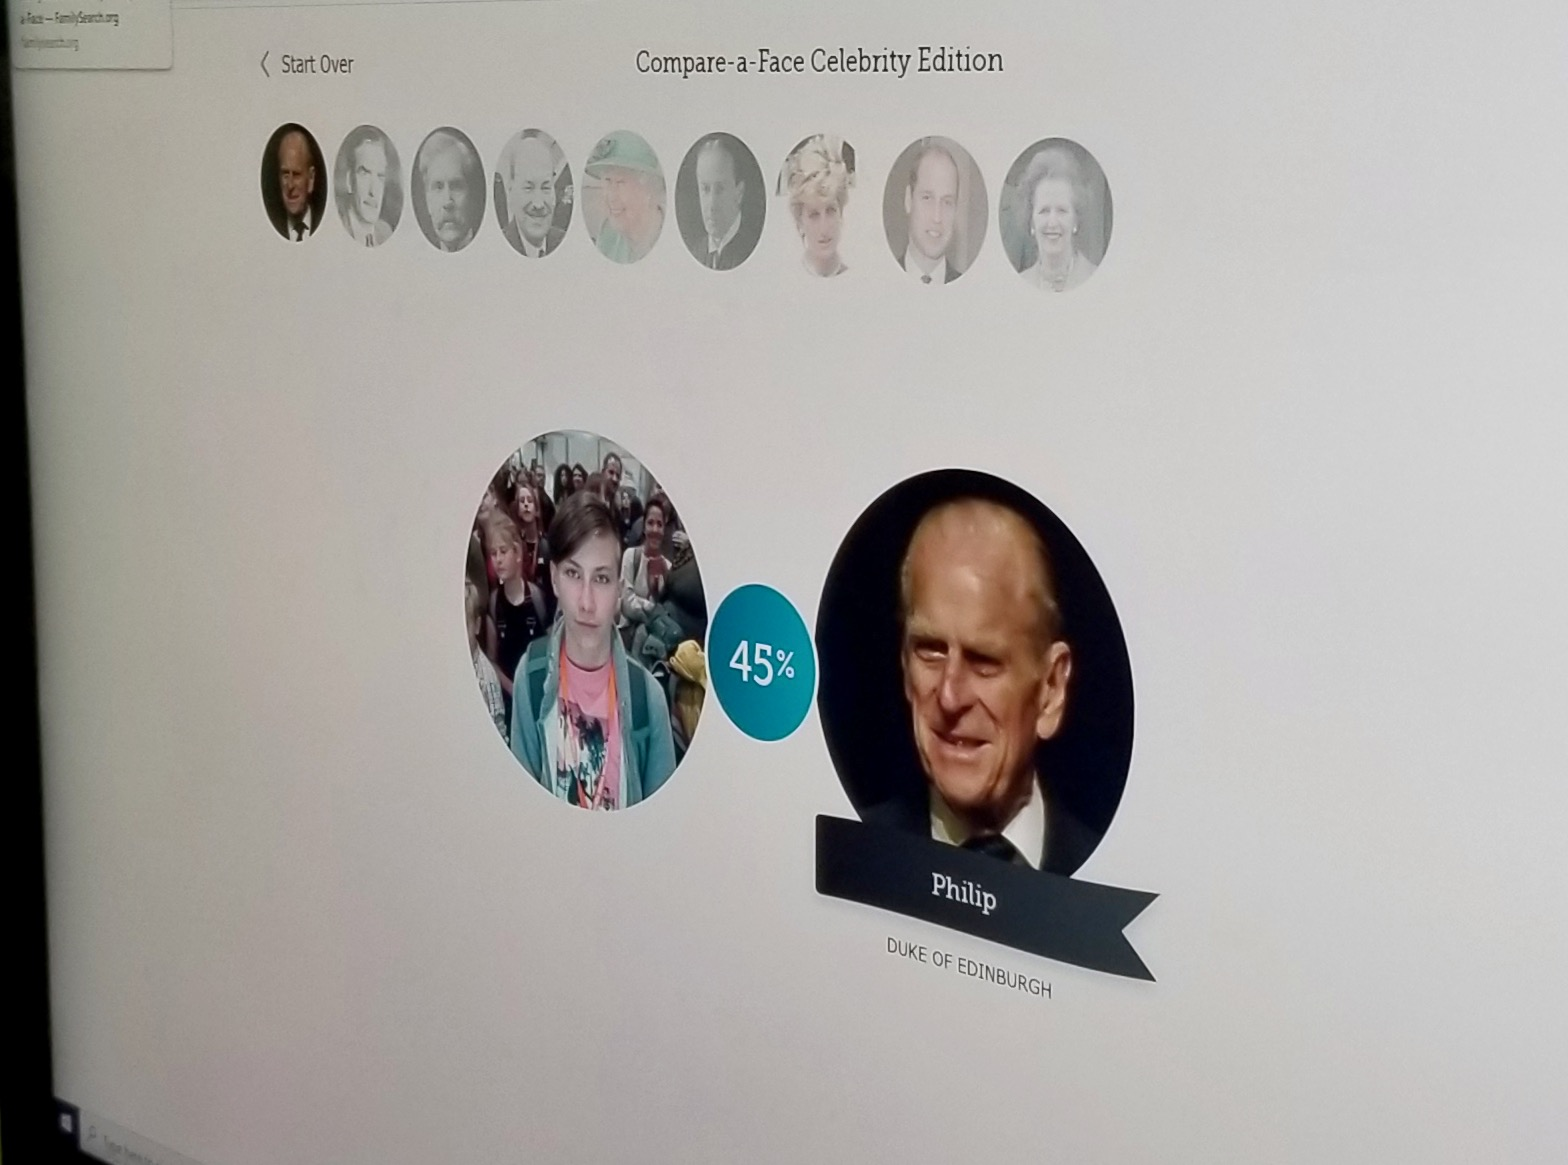 A young man's face matches Prince Phillip's on Oct. 26, 2019, in the RootsTech London discovery activity of matching one's face to British royalty.